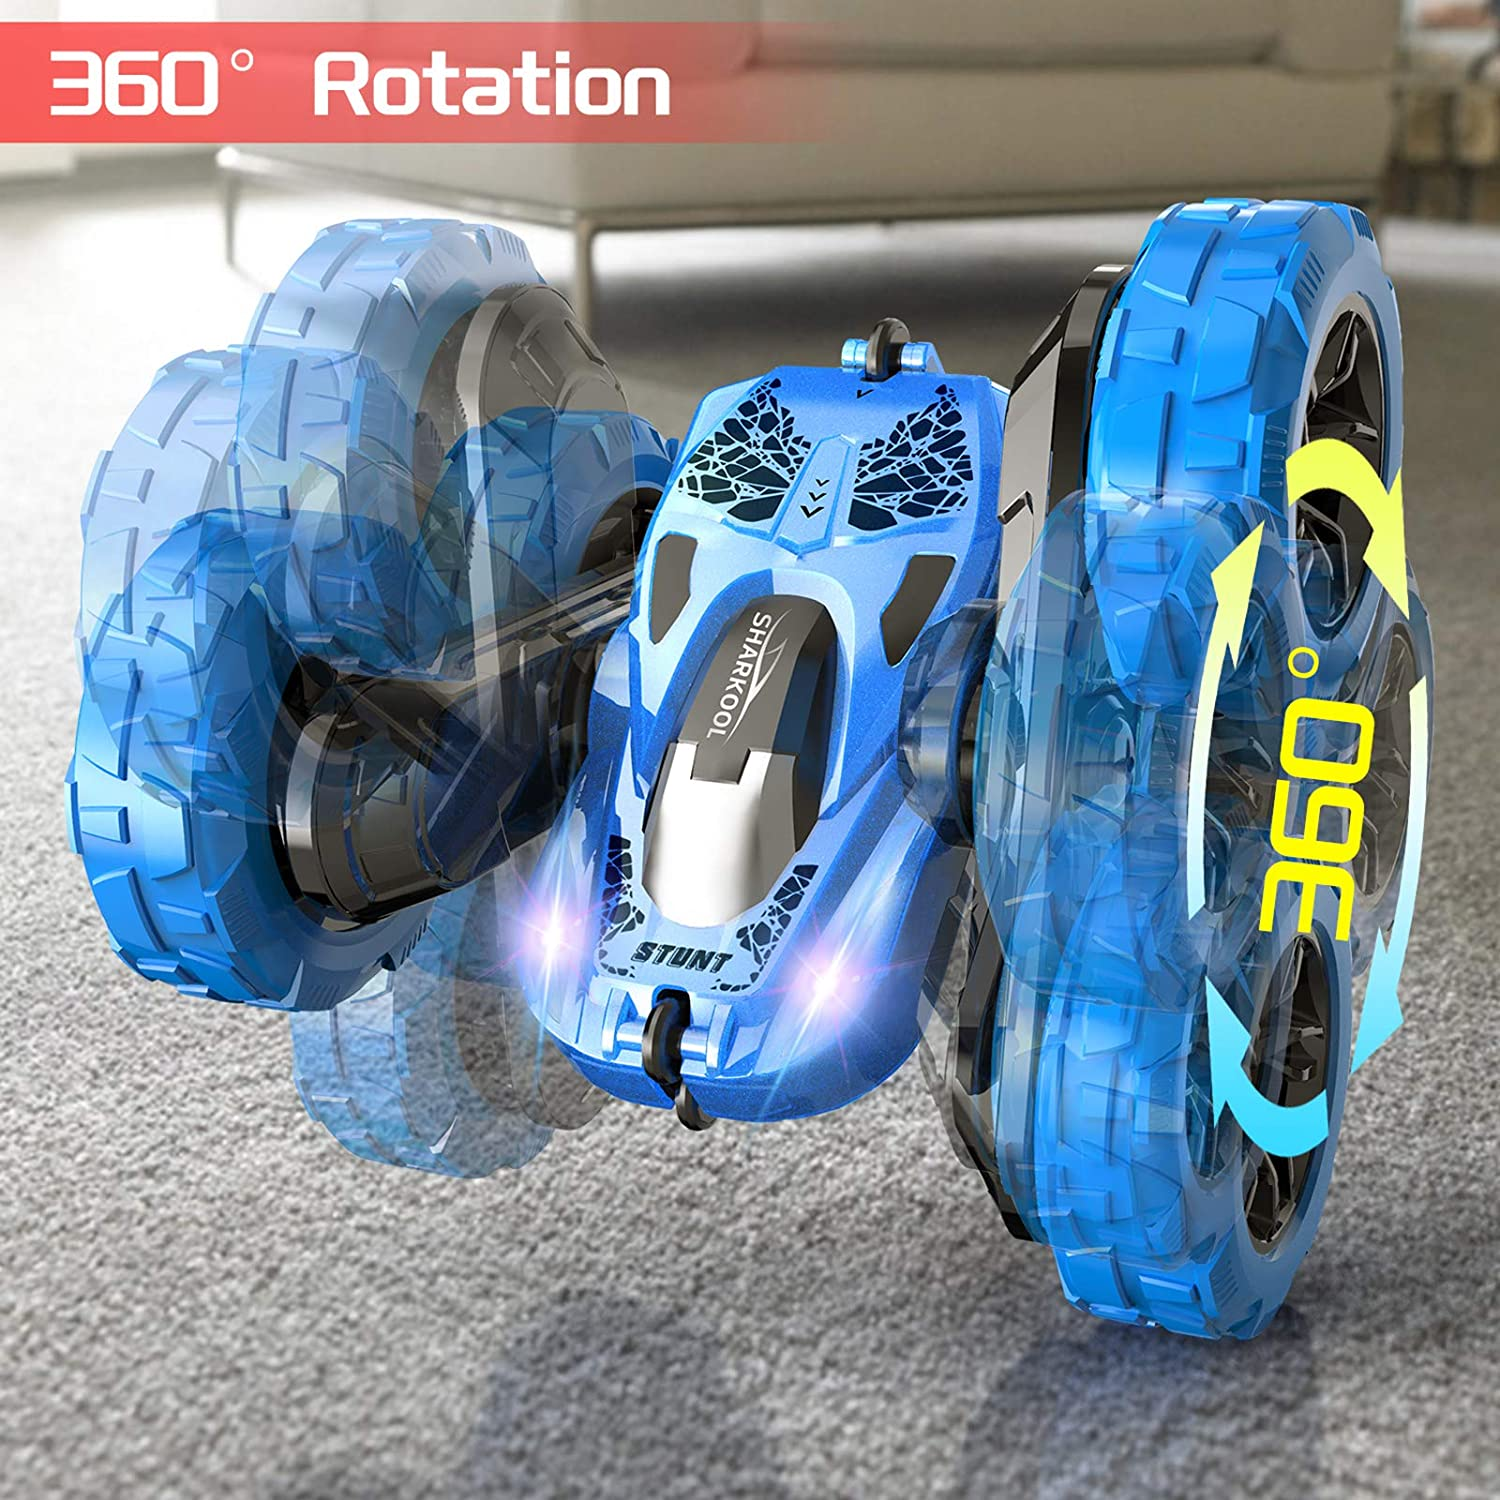 LED Headlights Off Road Toy Car for 3 4 5 6 7 8-12 Year Old Boys/&Girls 4WD High Speed Double Sided 360/° Rolling Rotating RC Car SHARKOOL 2.4GHz Electric Race Stunt Car Remote Control Car